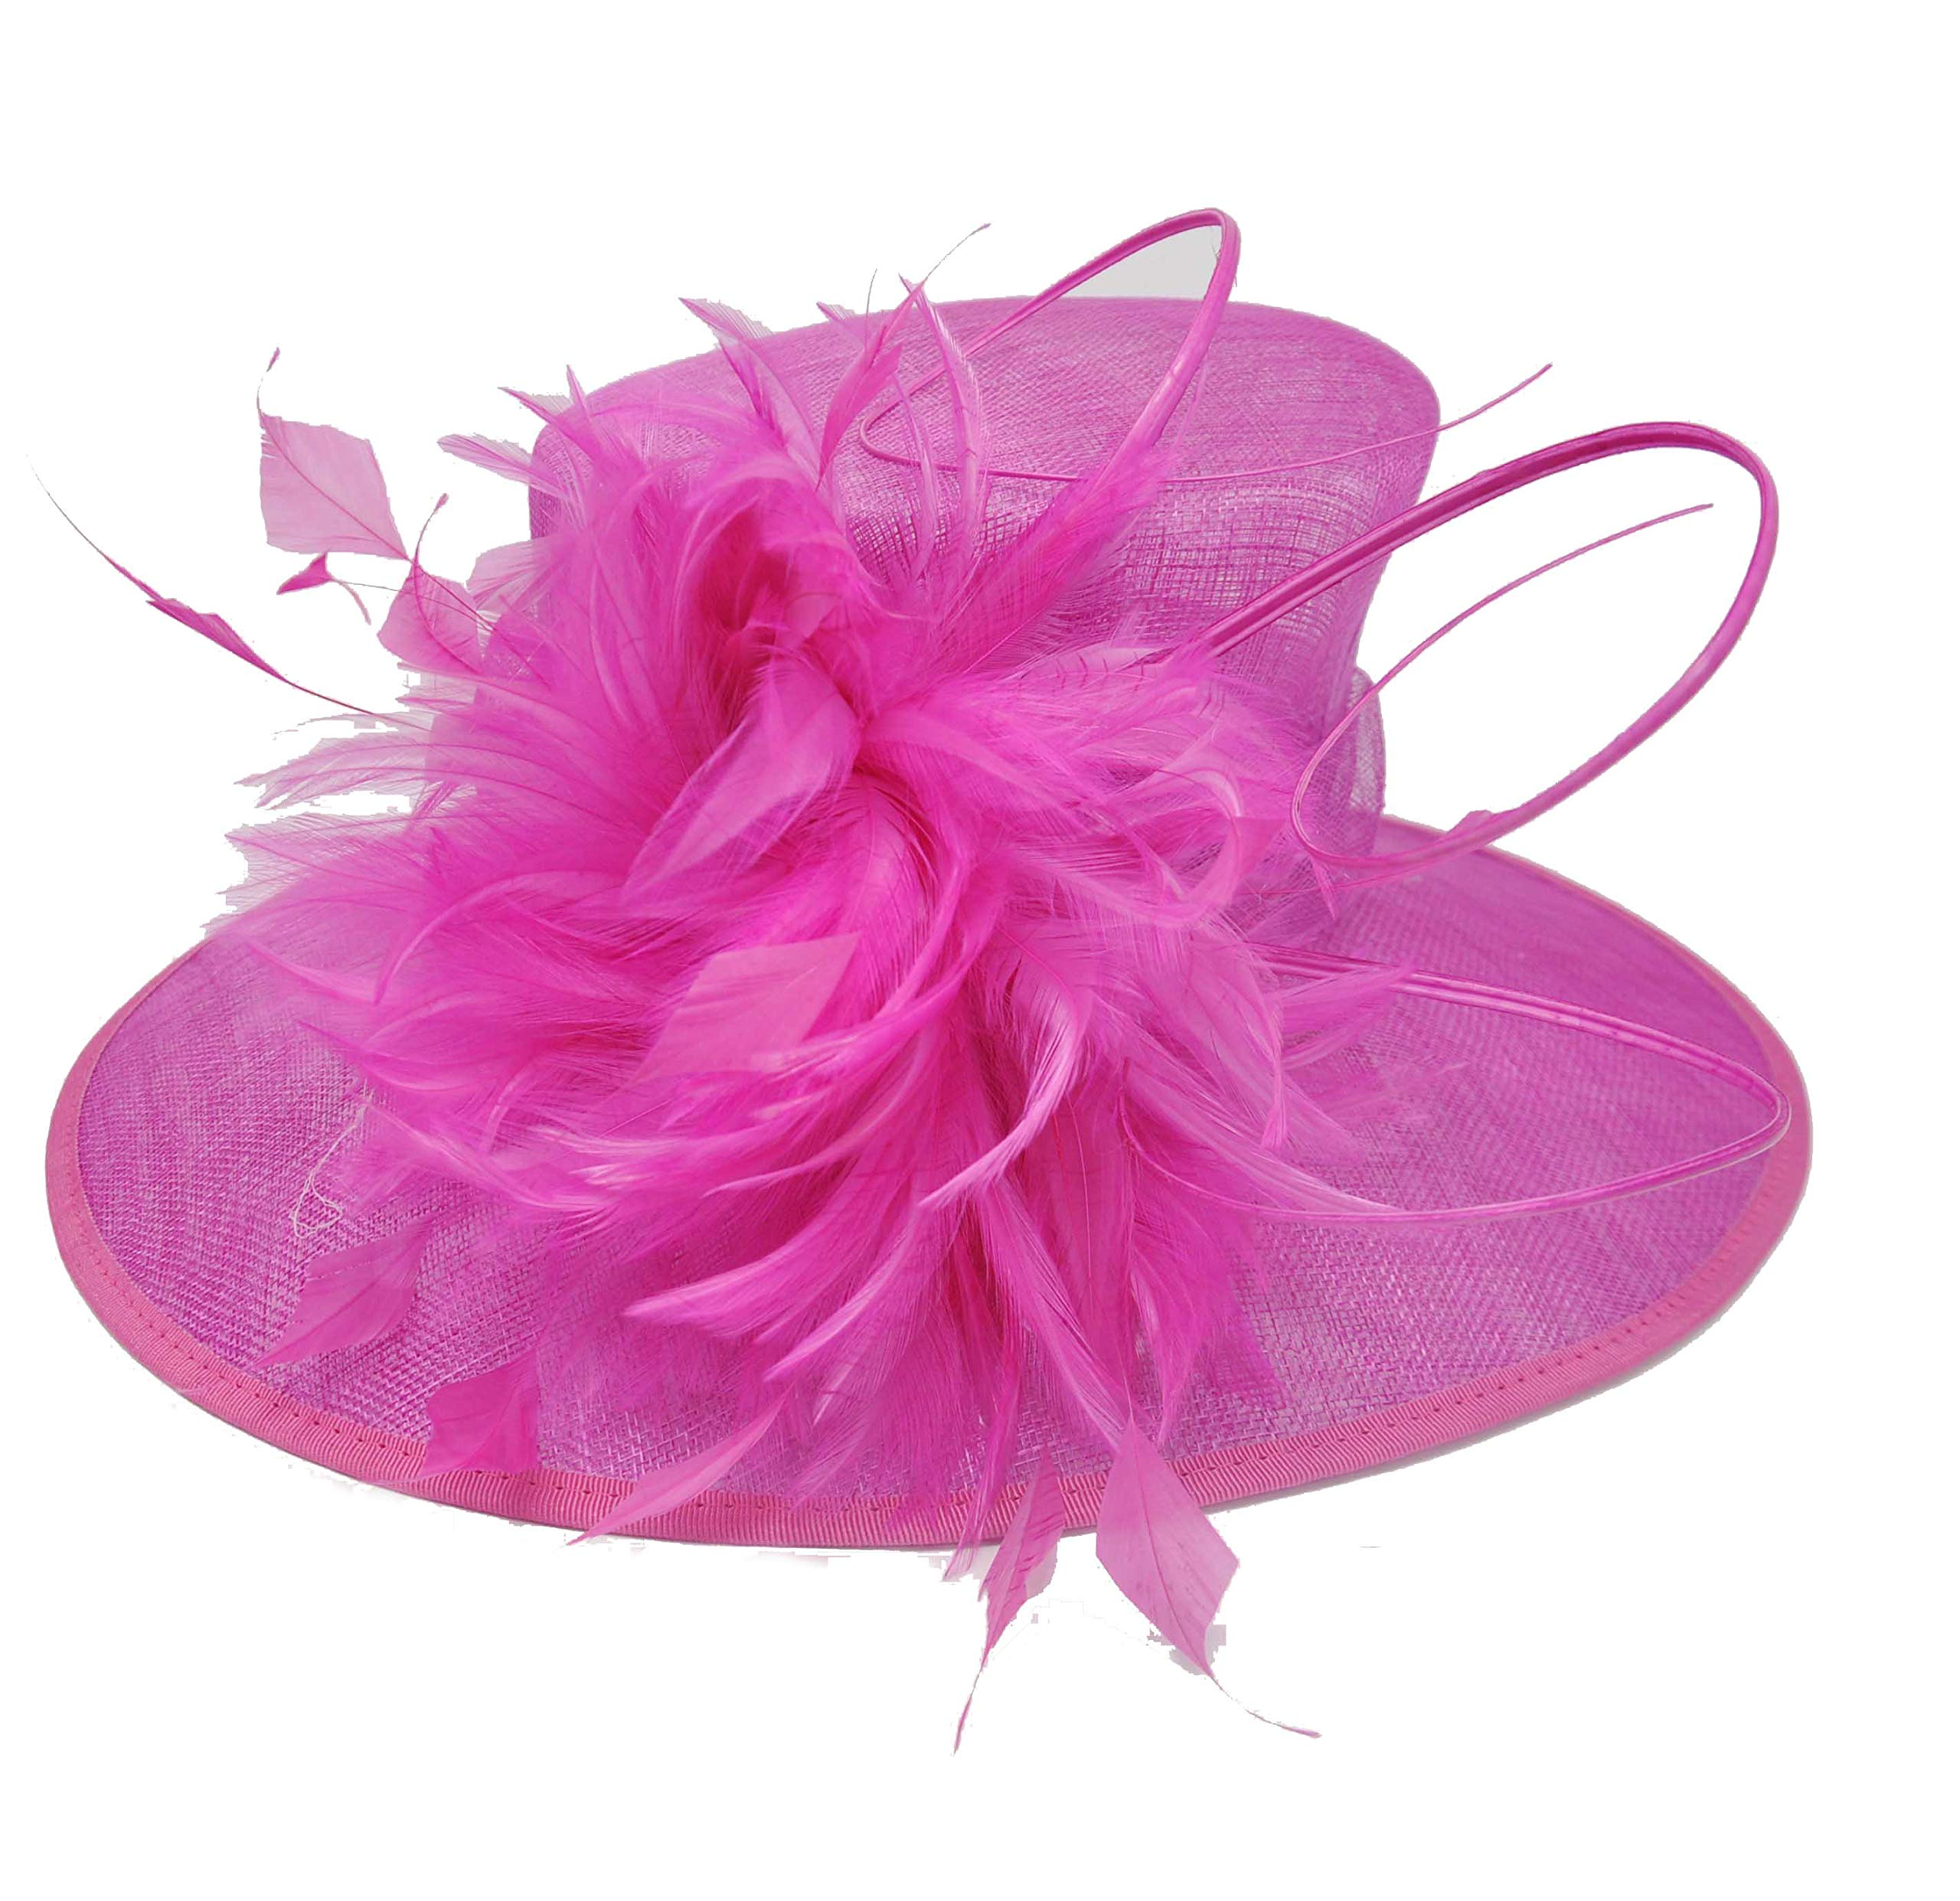 Image 0 Image 1 Image 2 Image 3 Image 4 Image 5 Church Kentucky Derby Carriage Tea Party Wedding Wide Brim Woman's Royal Ascot Hat in Solid Sinamay Hat Hot Pink